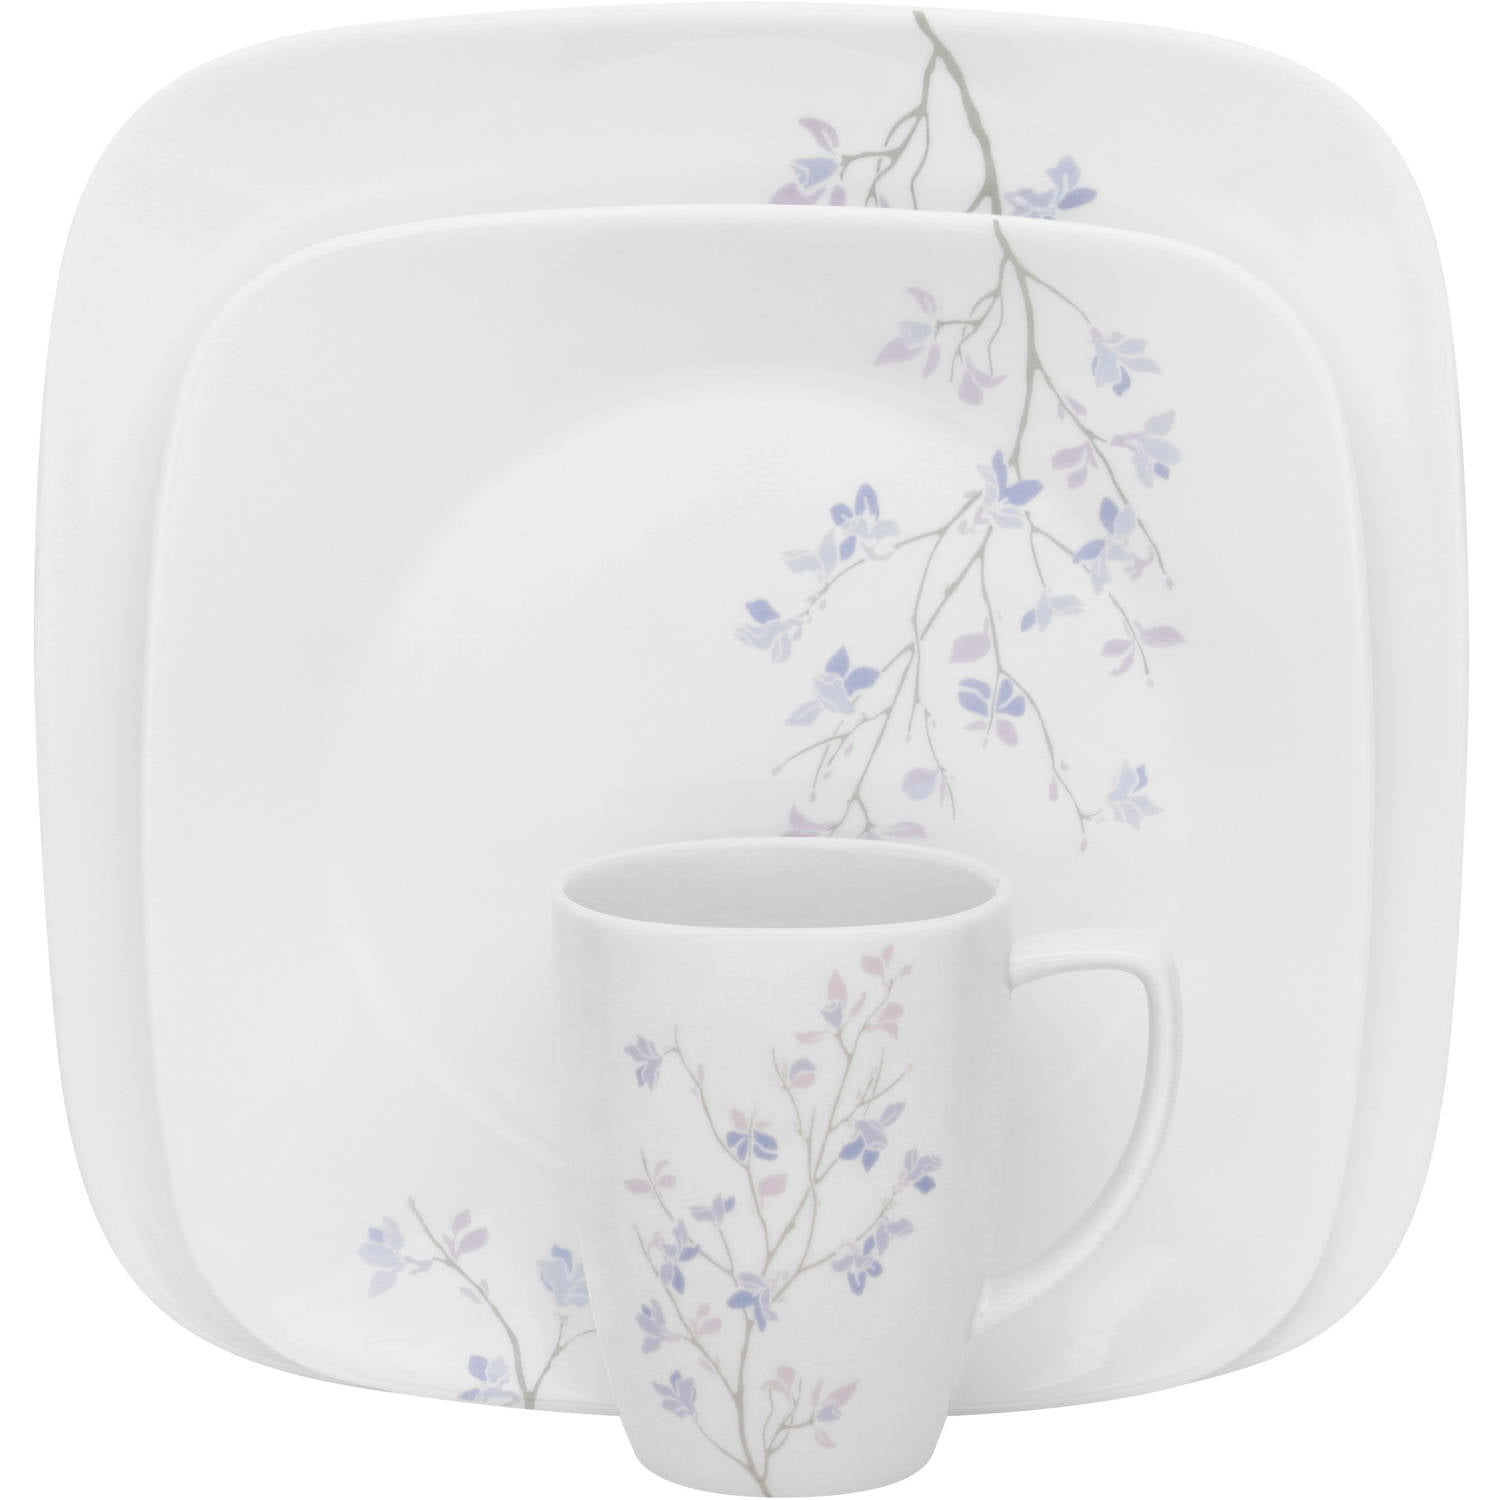 Corelle Patterns 2016 Best Decorating Ideas